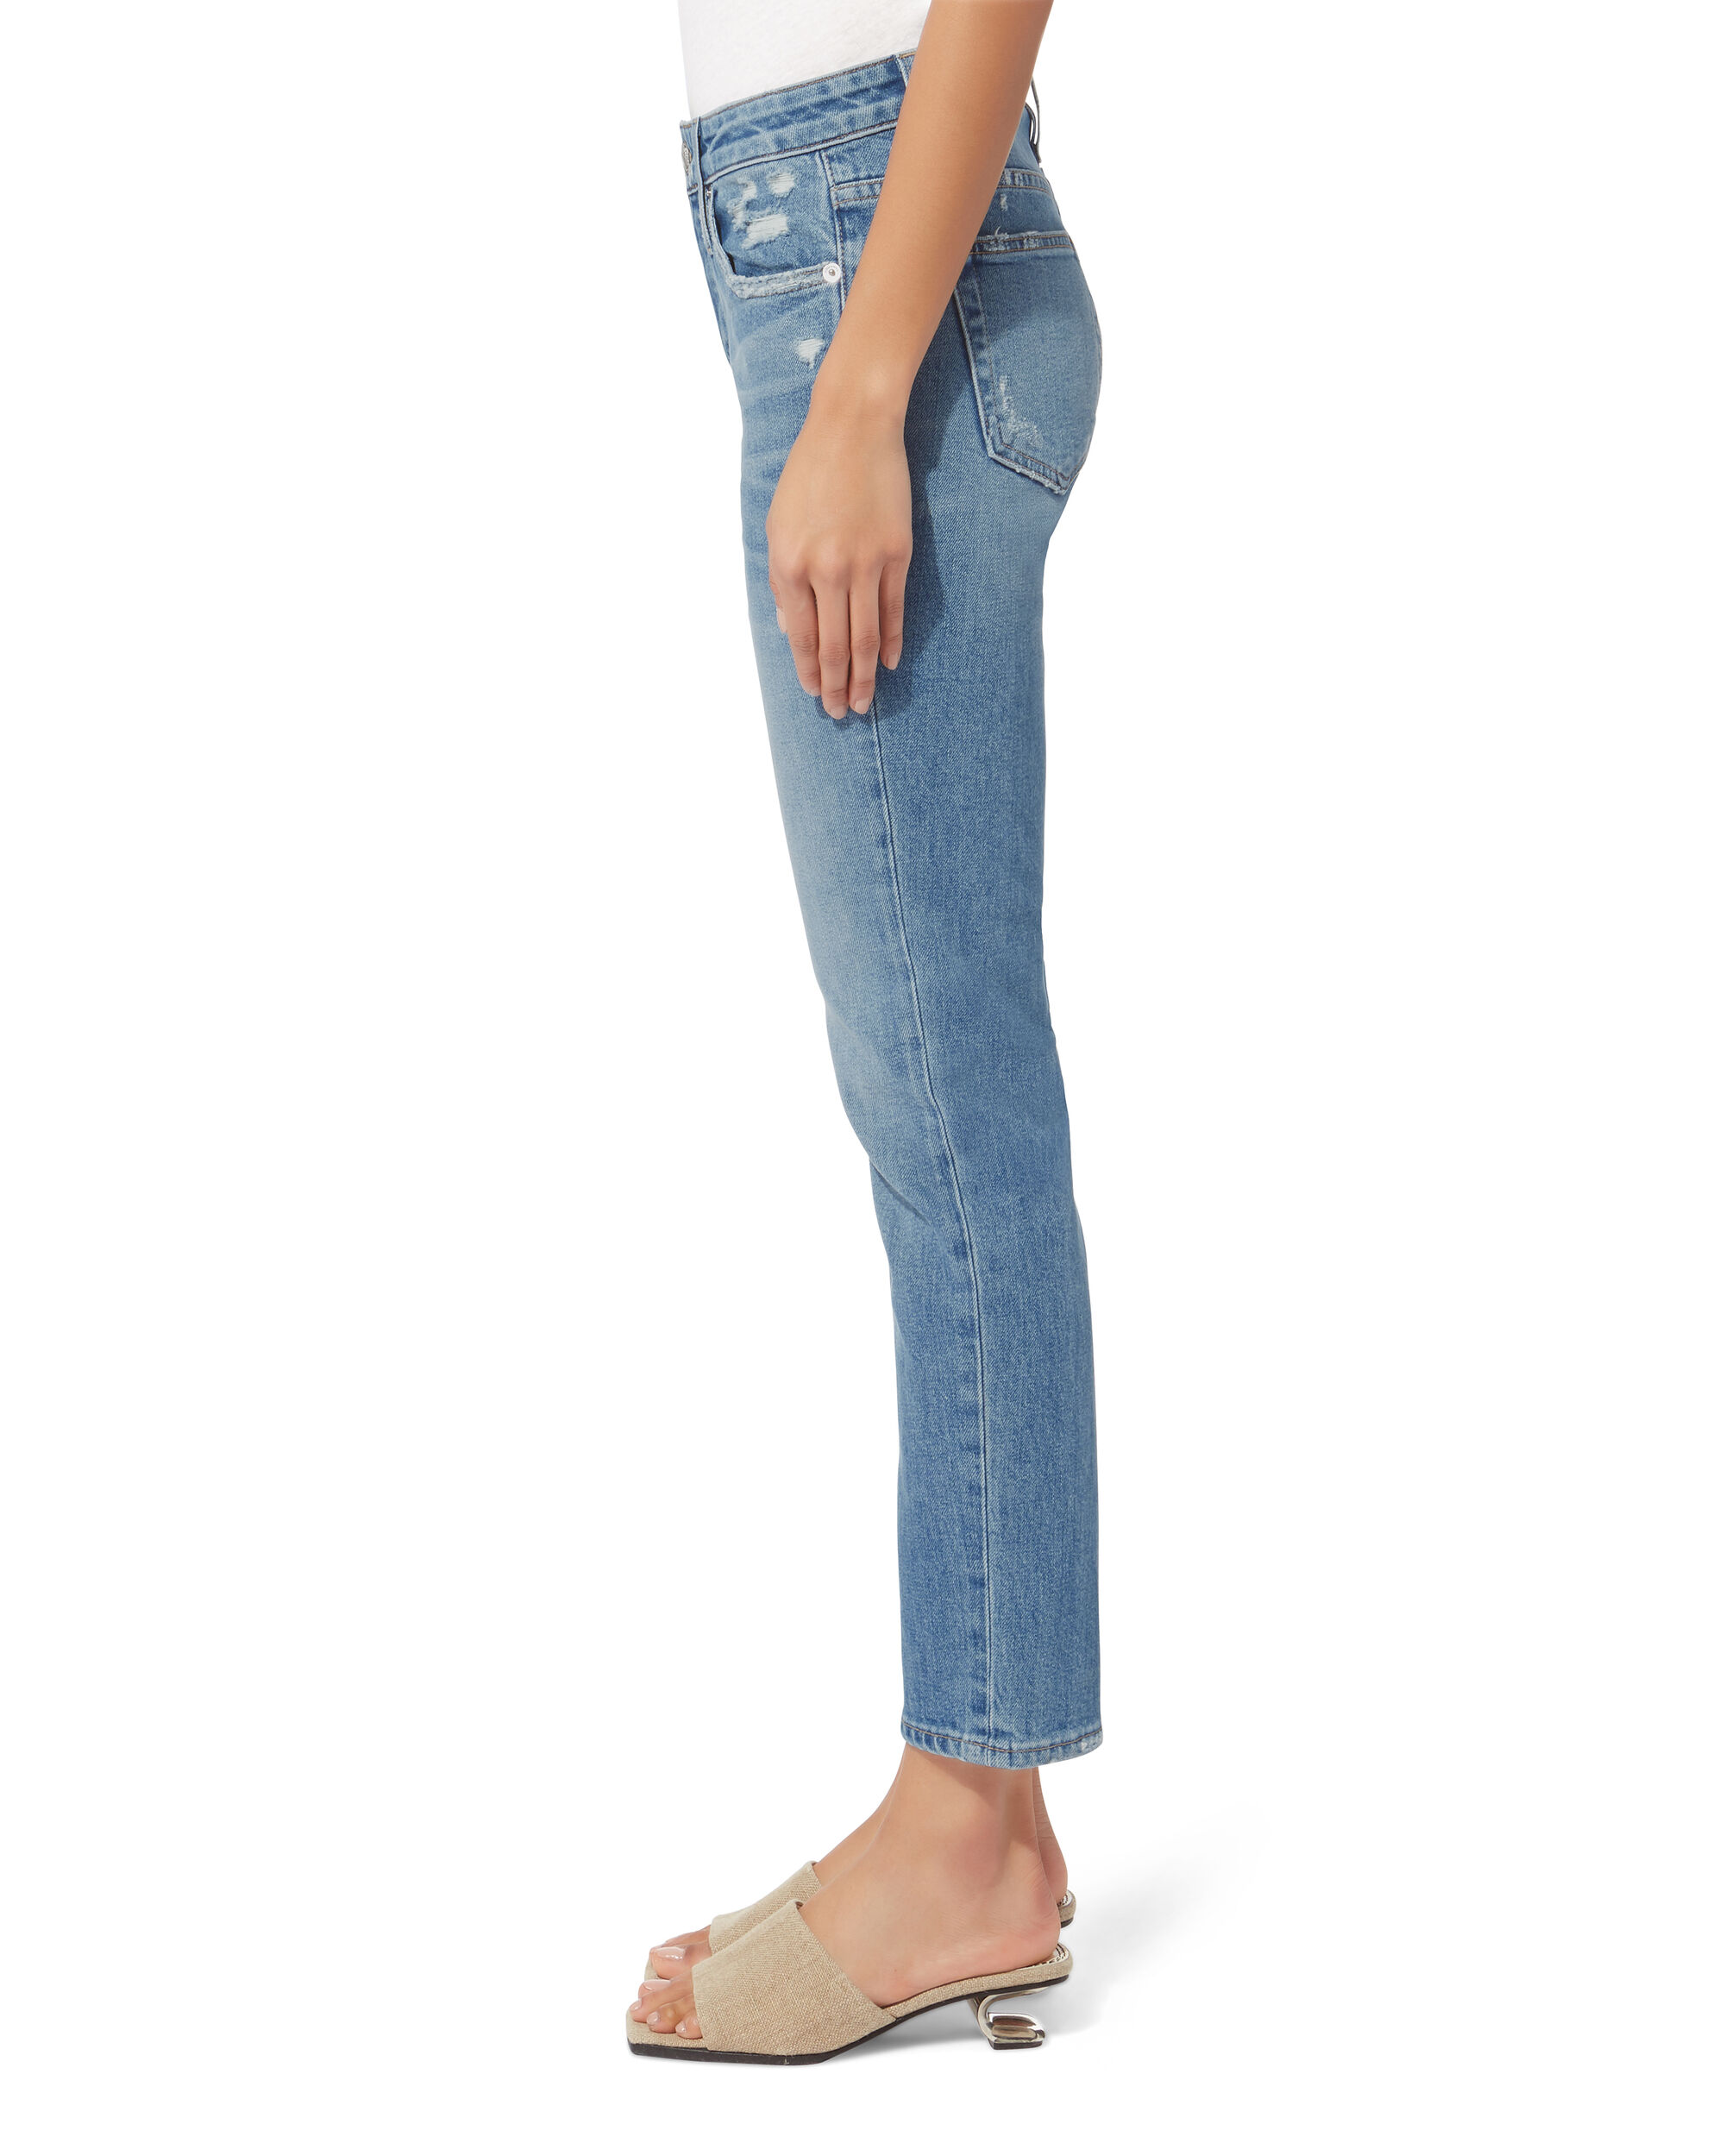 Lou Lou High-Rise Slim Leg Jeans, DENIM, hi-res